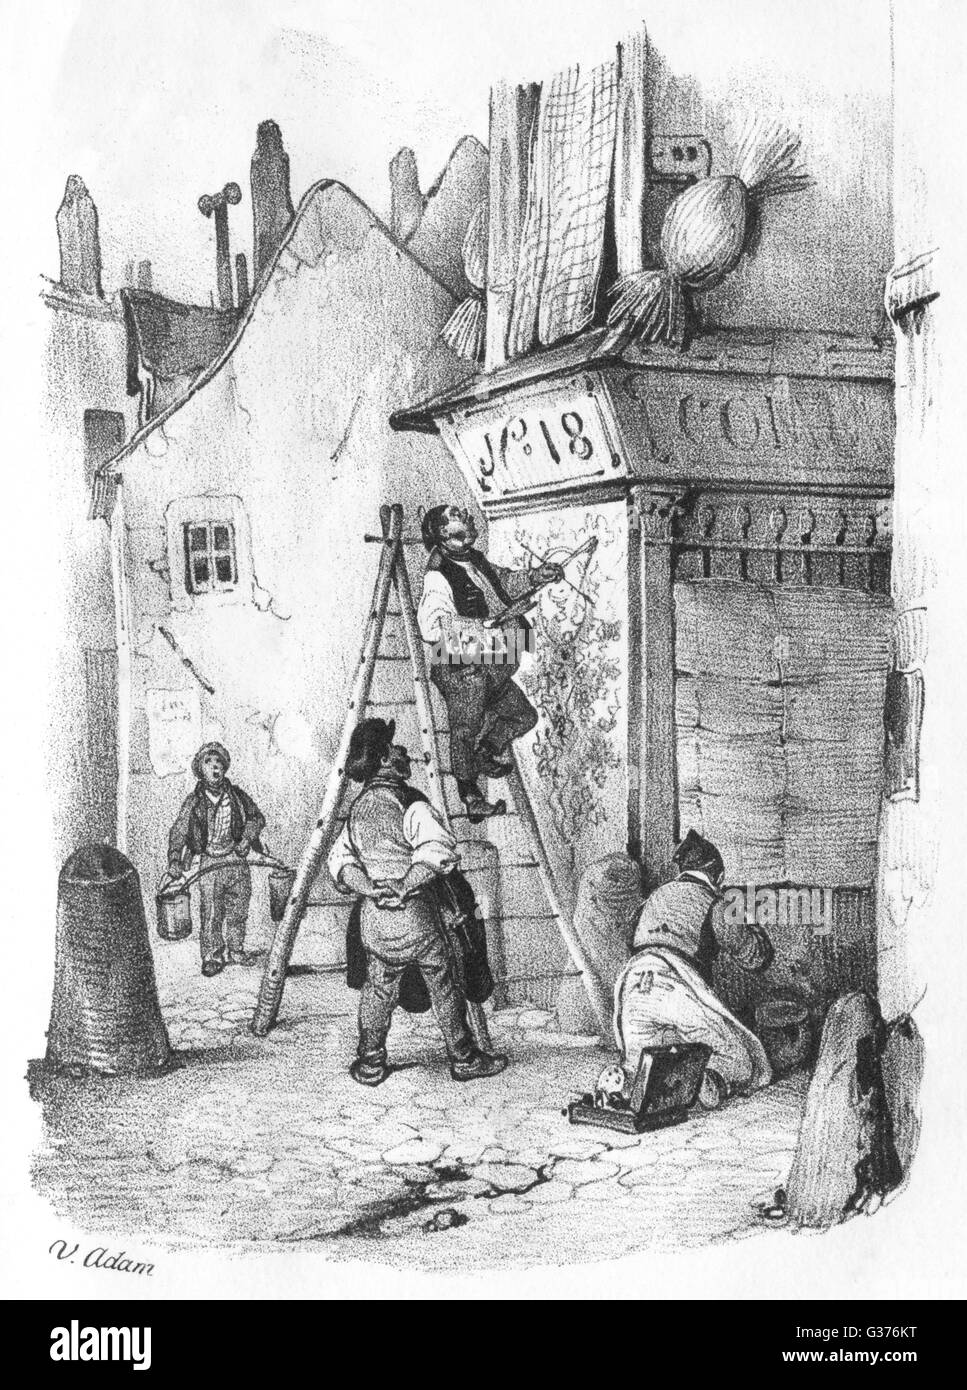 A French peintre d'enseigne  (sign painter) at work on a  shop-front.        Date: circa 1845 - Stock Image